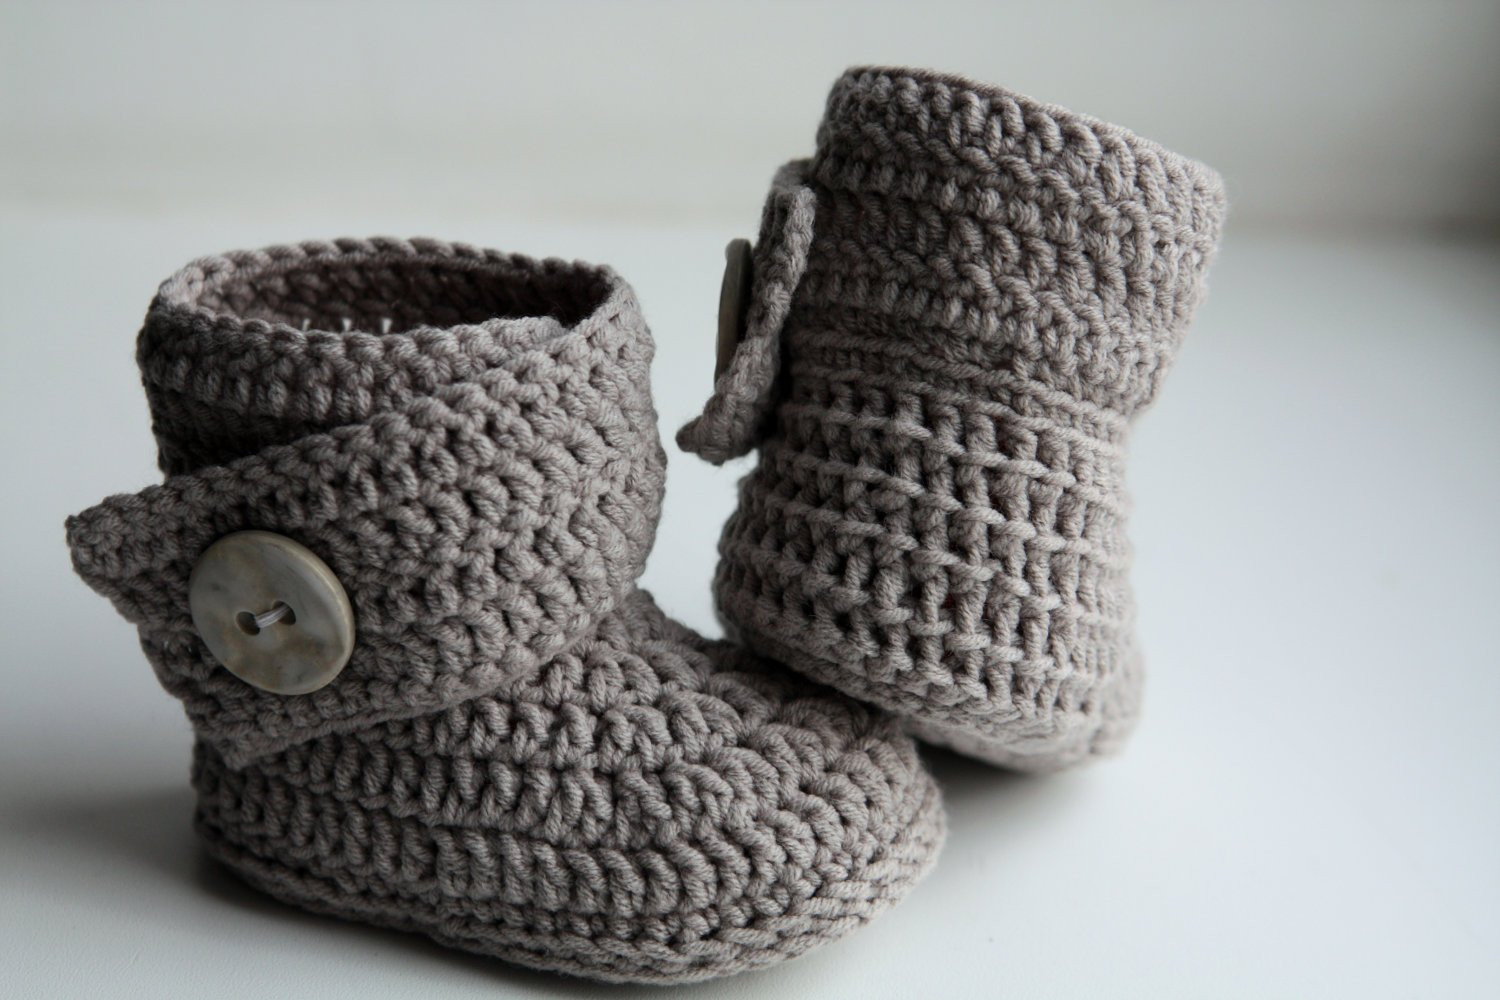 New Free Crochet Boot Pattern Uggs Crochet Boot Of Awesome 46 Photos Crochet Boot